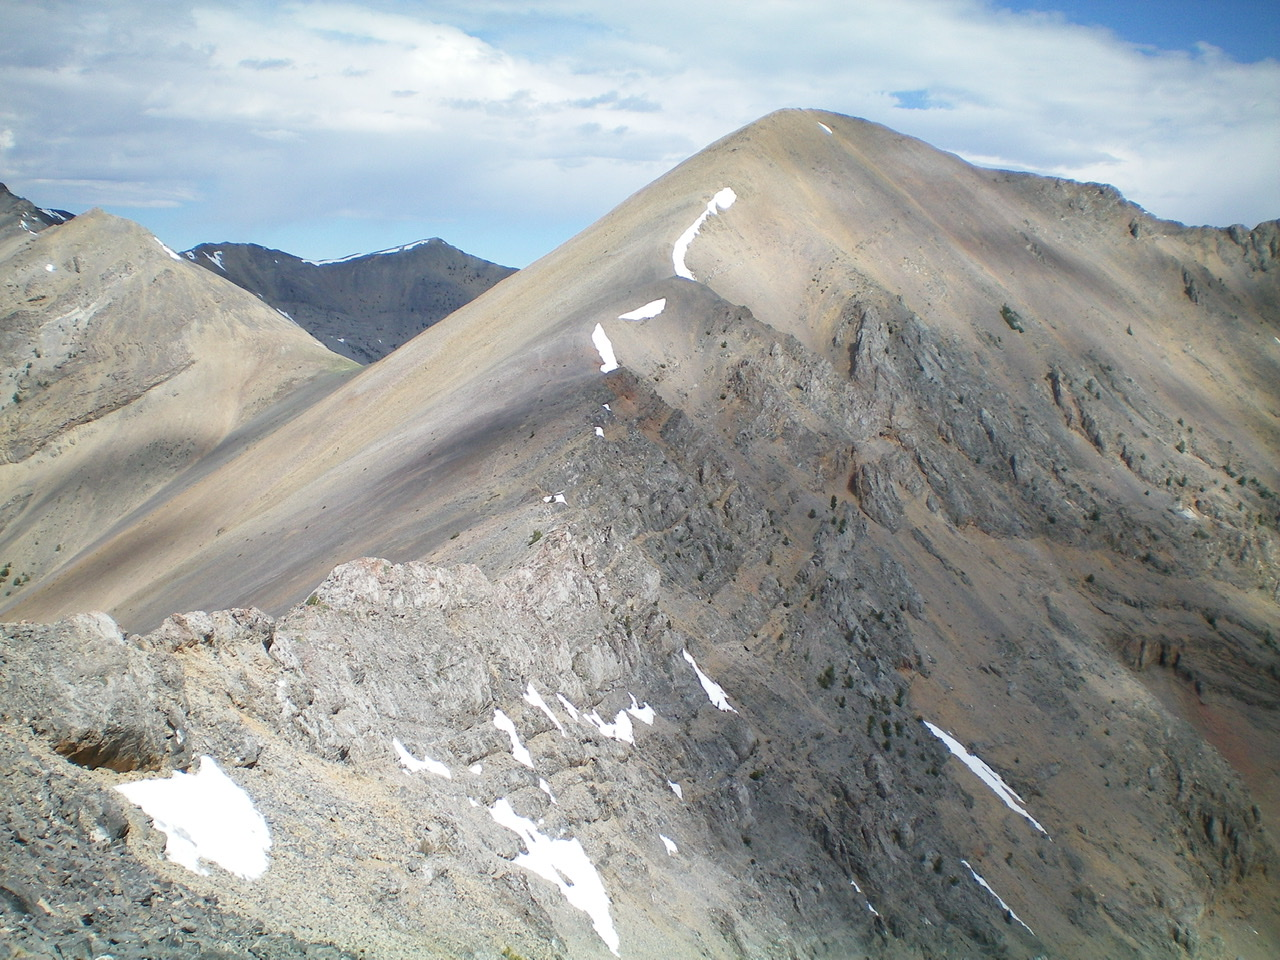 The Southeast Ridge of the Knoll (summit is just right of center) as viewed from low on the Northwest Ridge of Umpleby Peak. Livingston Douglas Photo